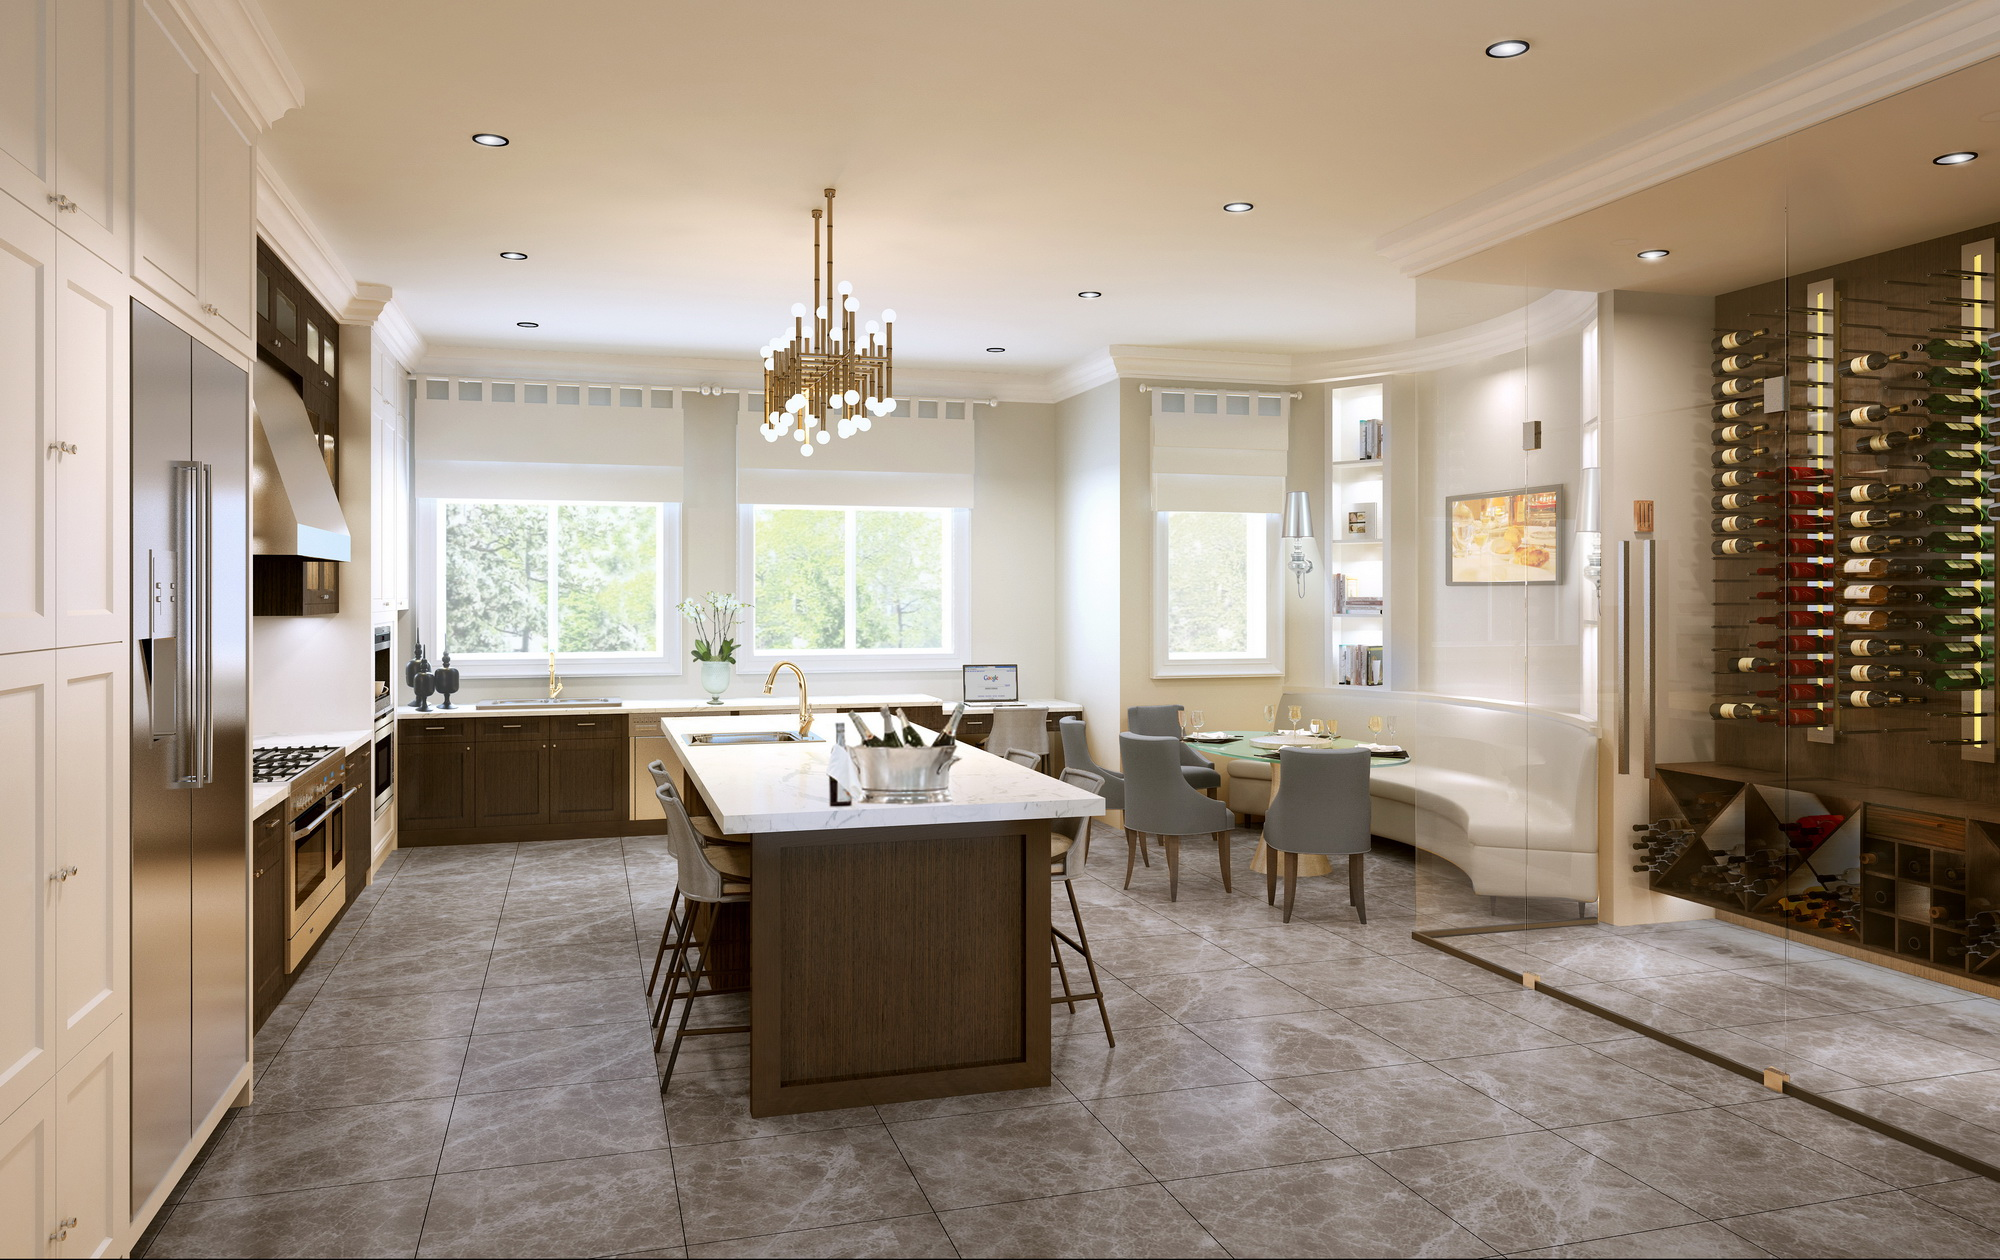 Interior 3D Rendering Kitchen